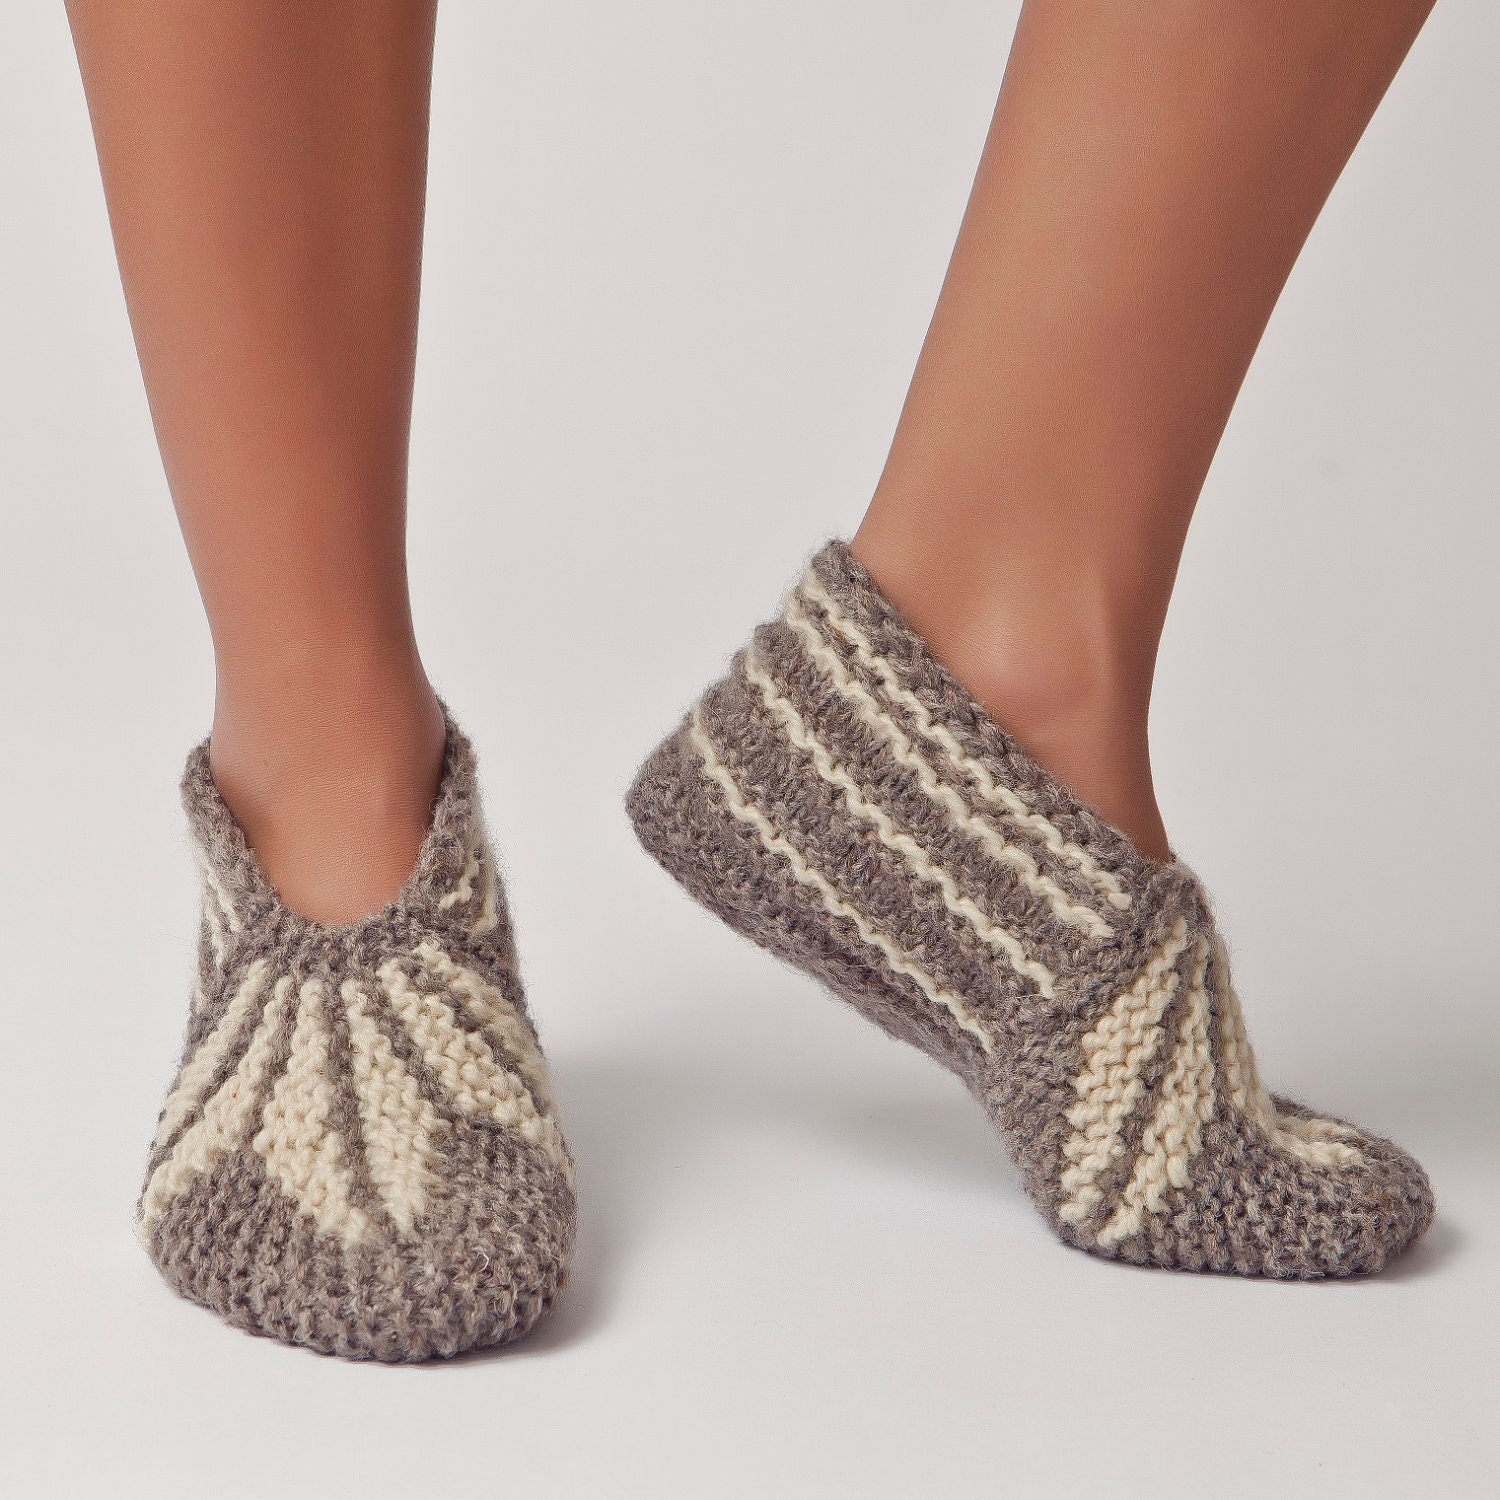 Knitting Women S Socks : Wool slippers handknit socks warm soft knitted